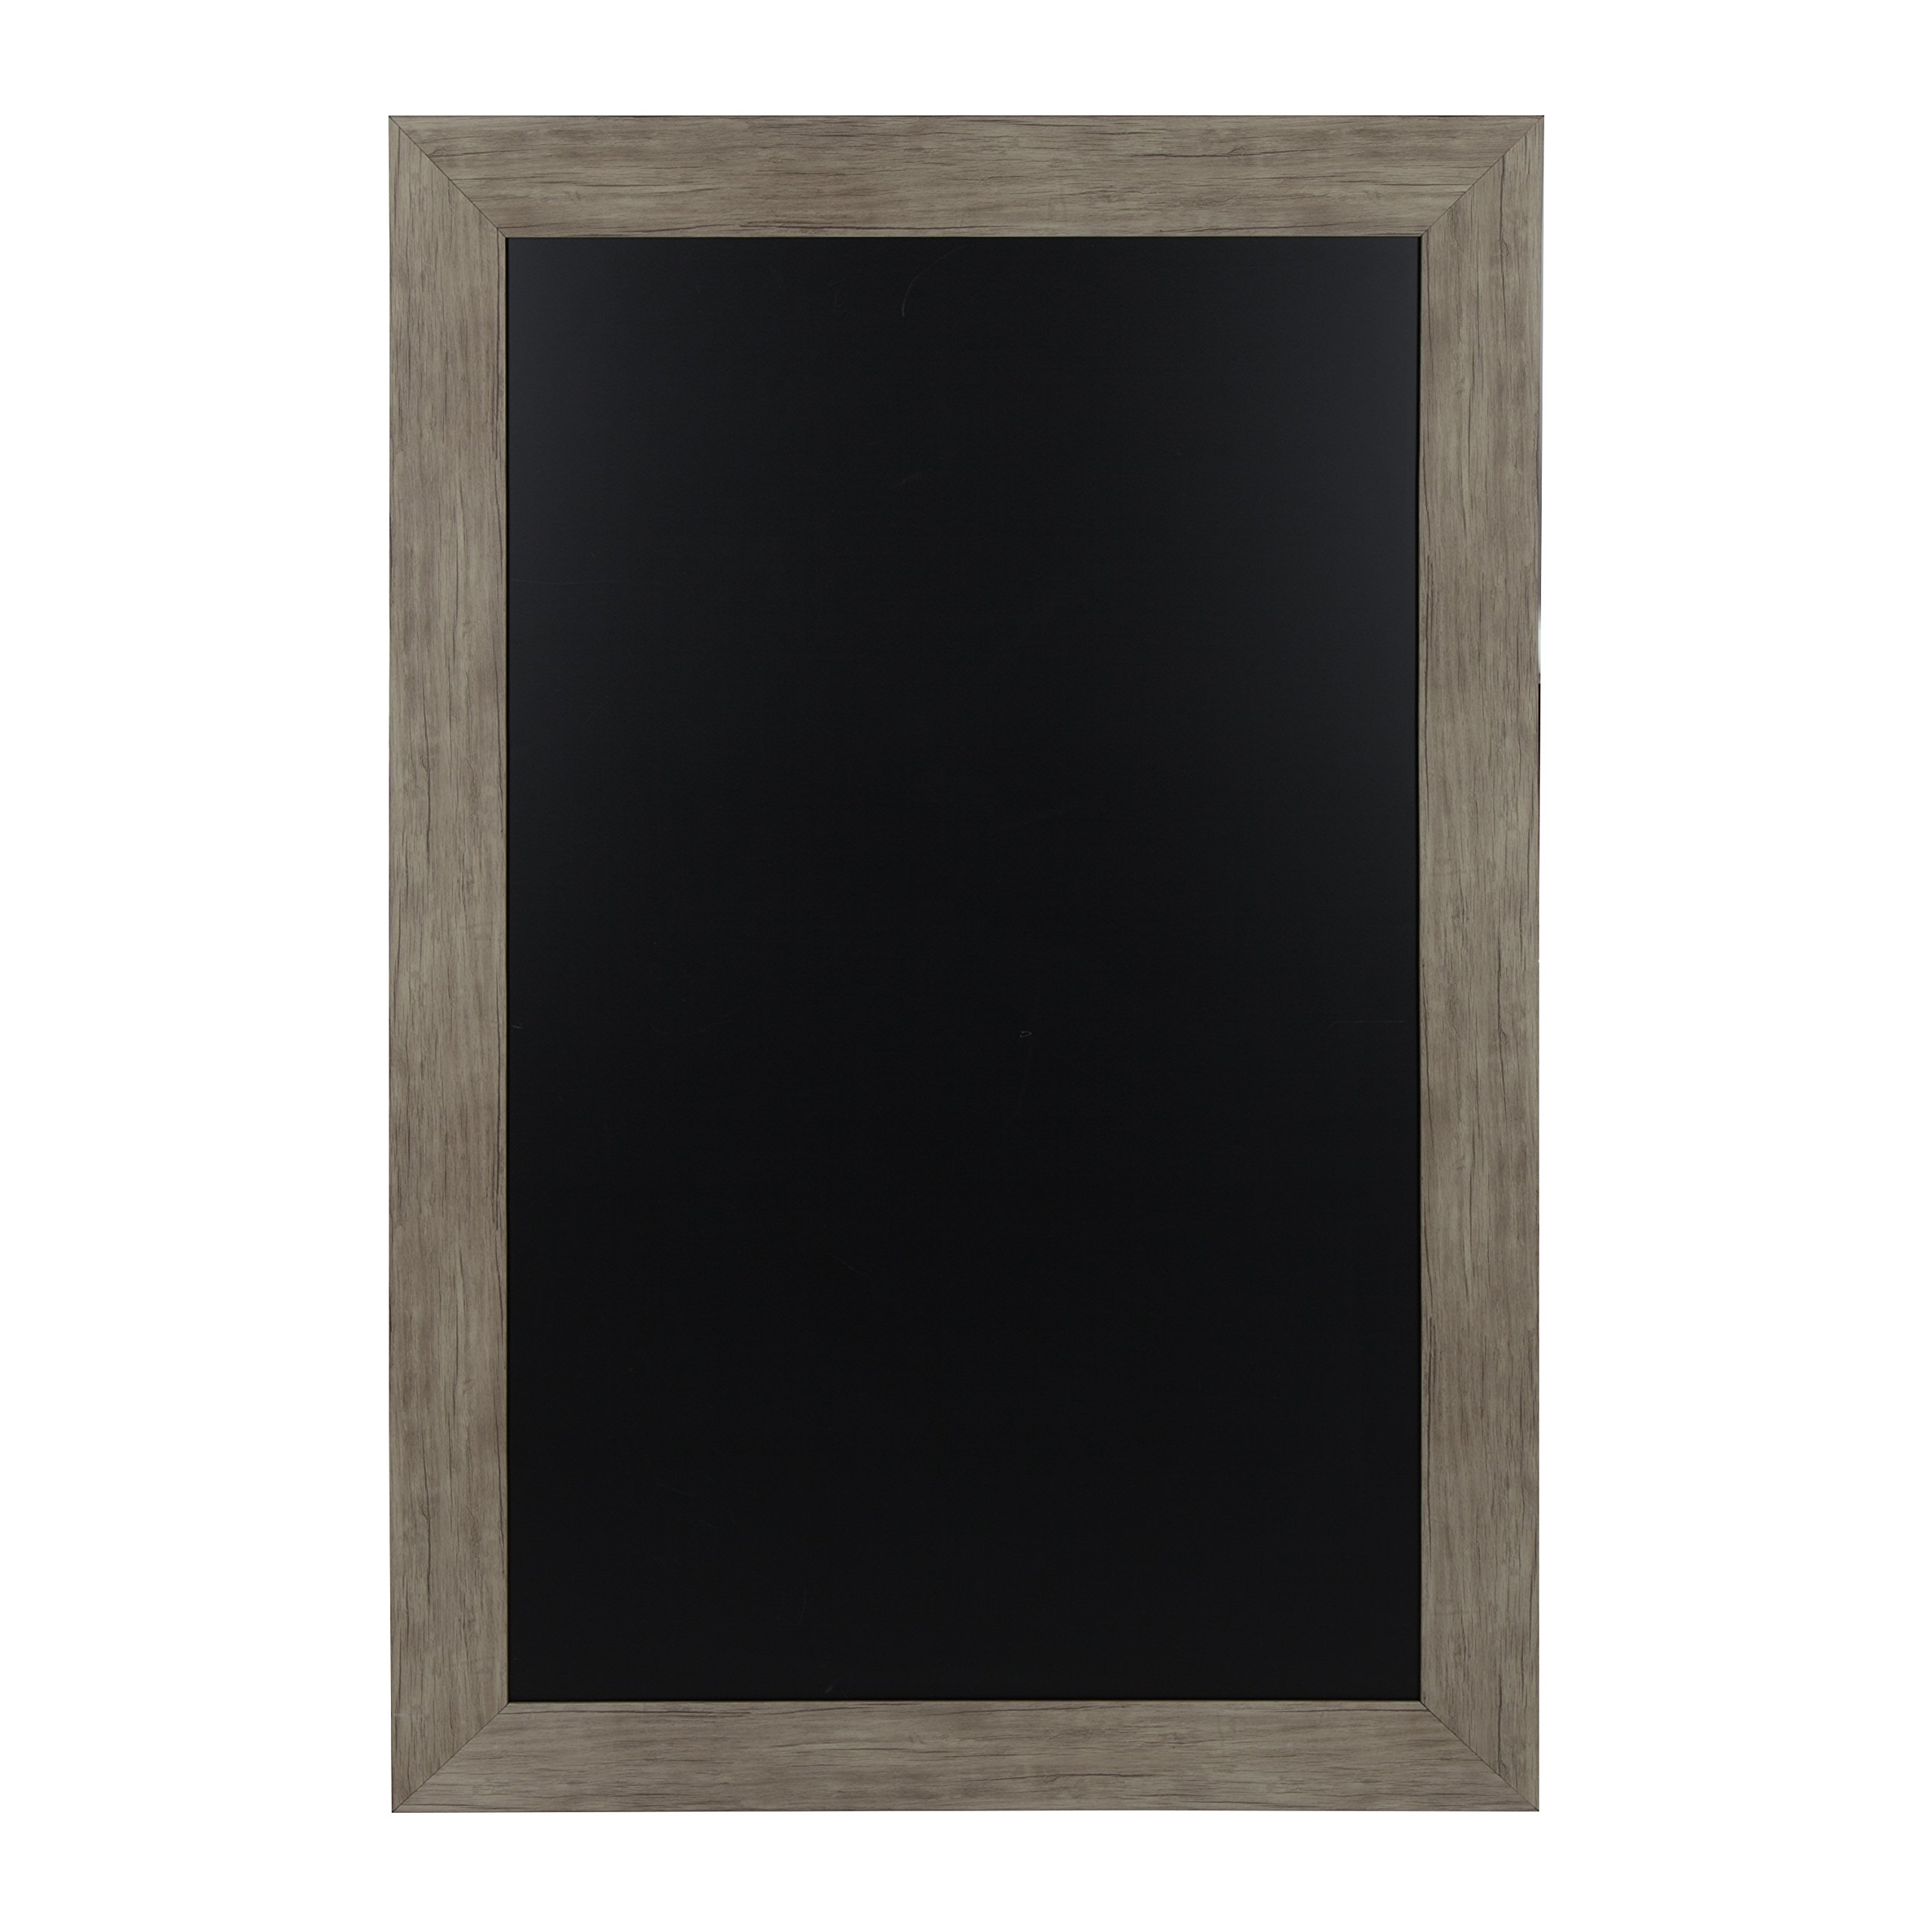 DesignOvation Beatrice Framed Magnetic Chalkboard, 29.5x45.5, Rustic Brown by DesignOvation